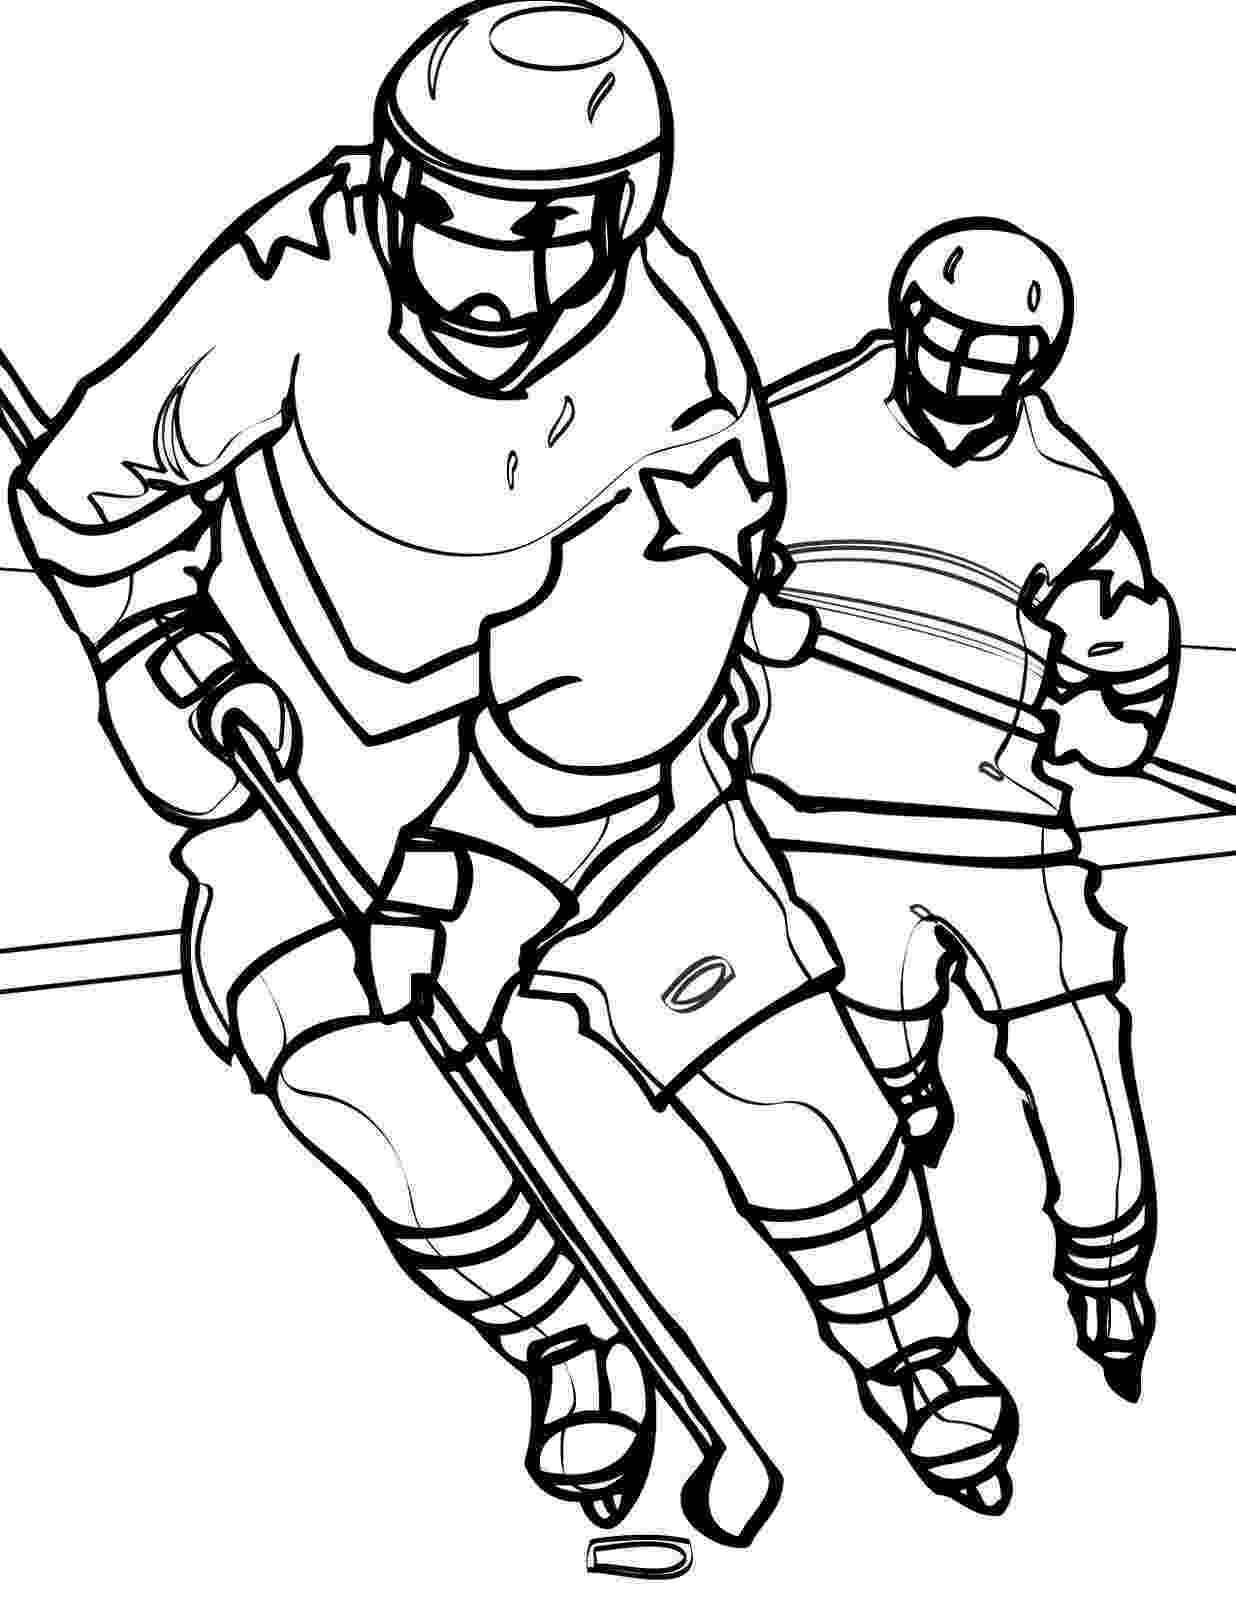 free sports coloring sheets basketball coloring pages to download and print for free coloring sports free sheets